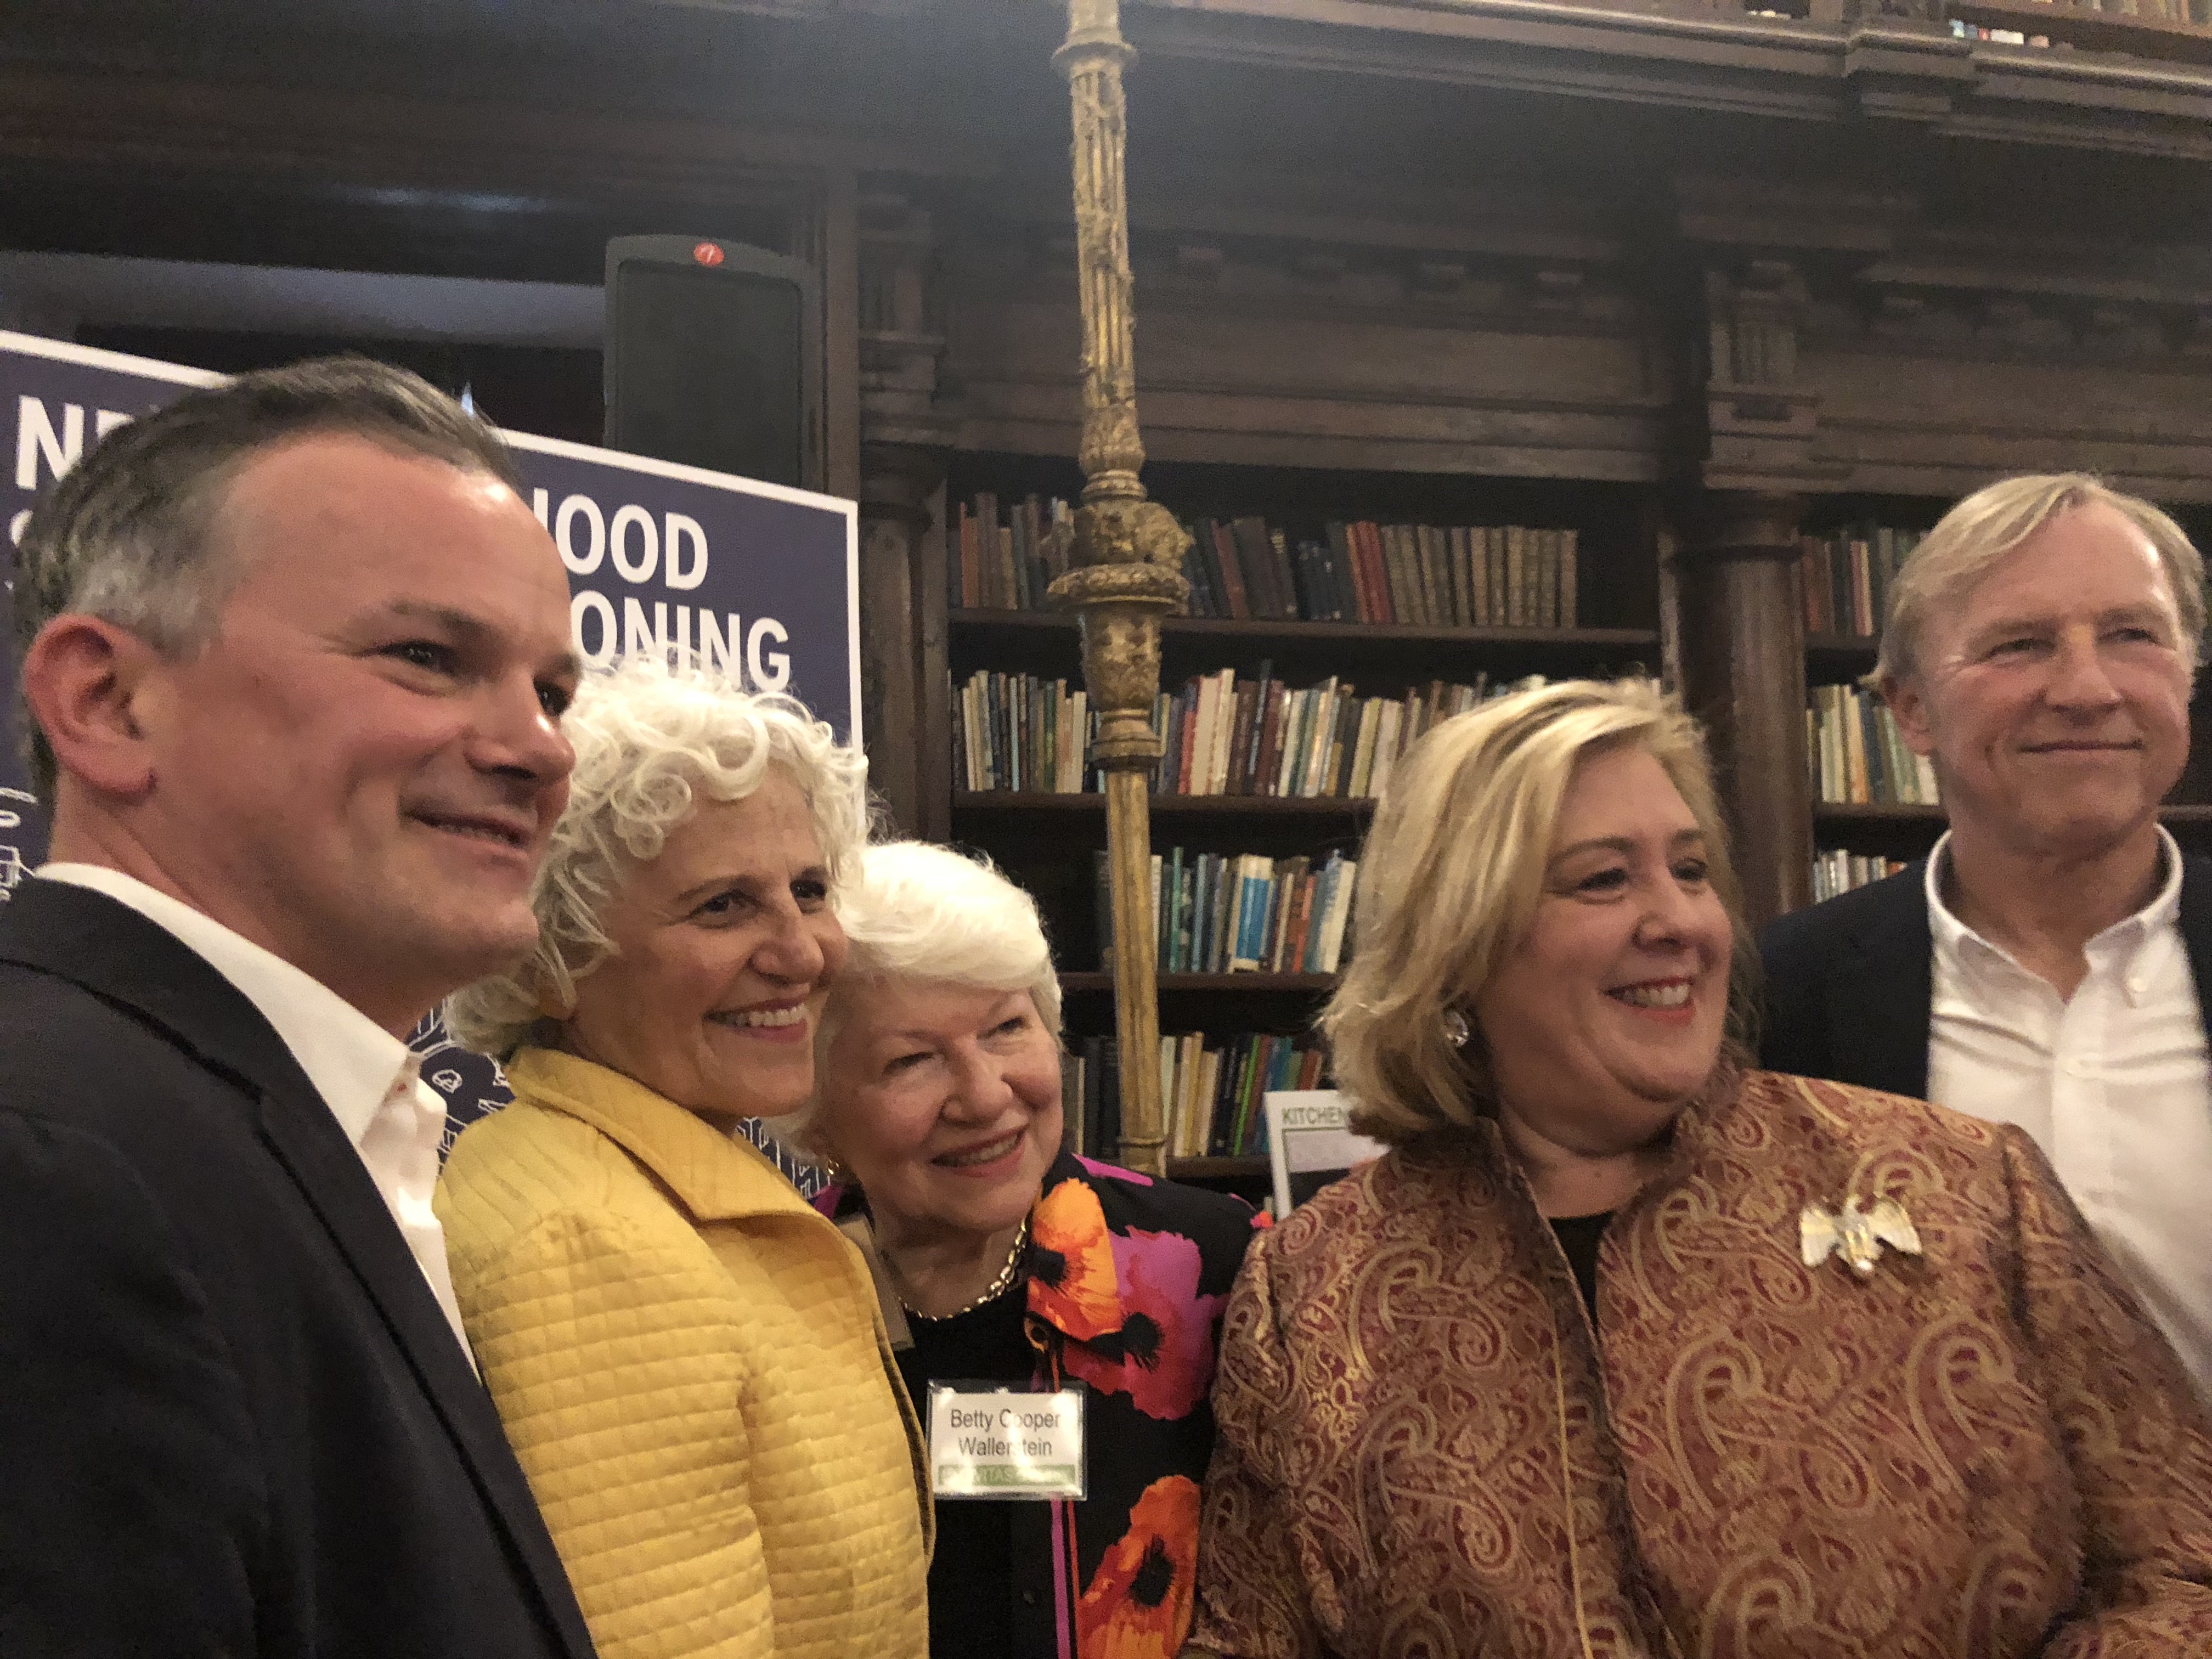 On the occasion of the Spring 2018 CIVITAS Annual Benefit honoring local businesses dedicated to their neighborhoods and customers, Assembly Member Seawright honored and recognized the outstanding contributions of Our Town Newspaper President Jeanne Straus. East 79th Street Neighborhood Association President Betty Wallerstein with honoree Jeanne Straus and Rebecca Seawright.